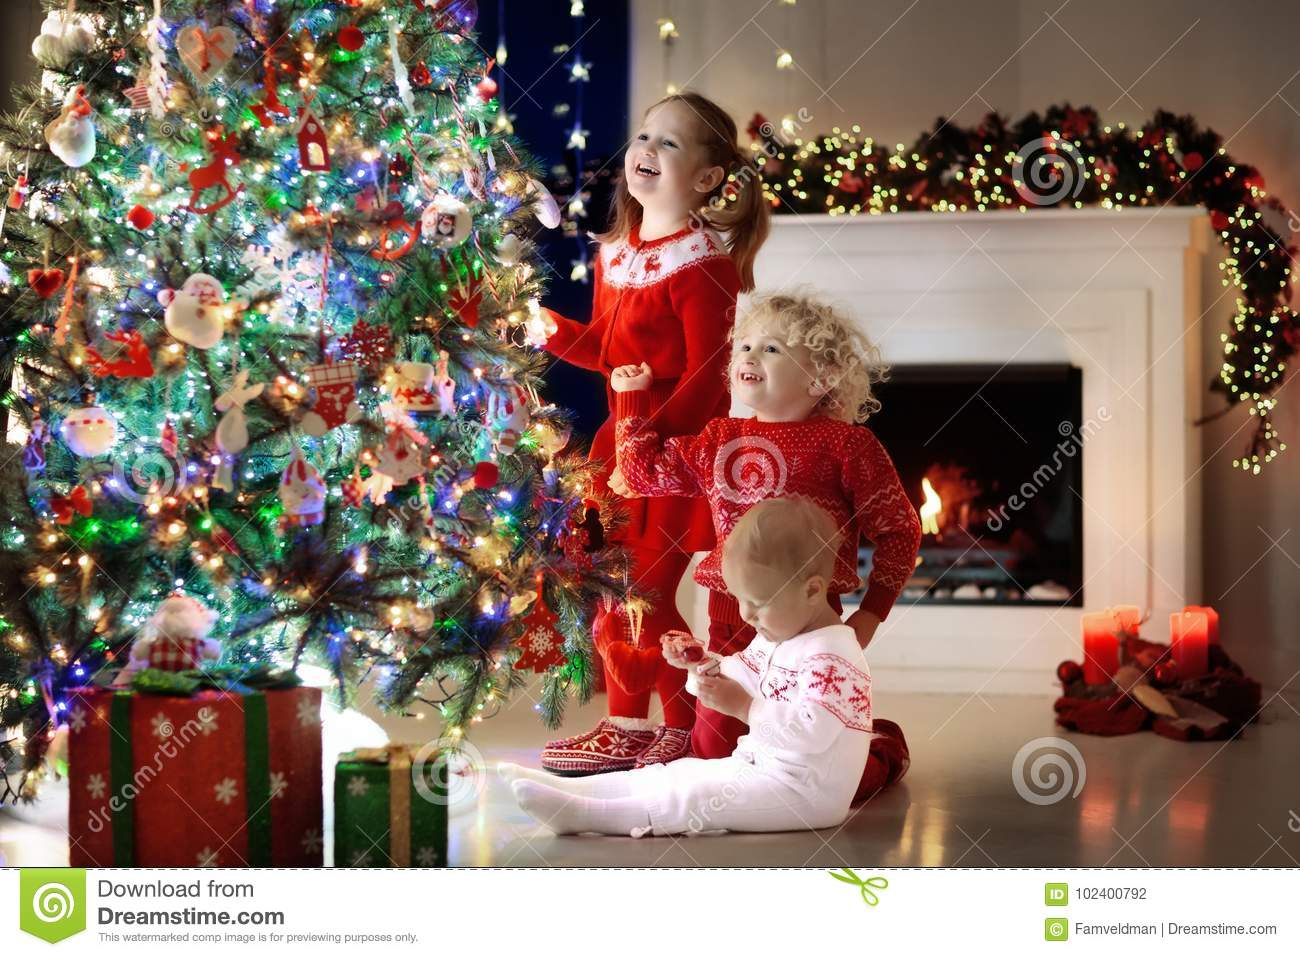 Children at Christmas tree. Kids at fireplace on Xmas eve